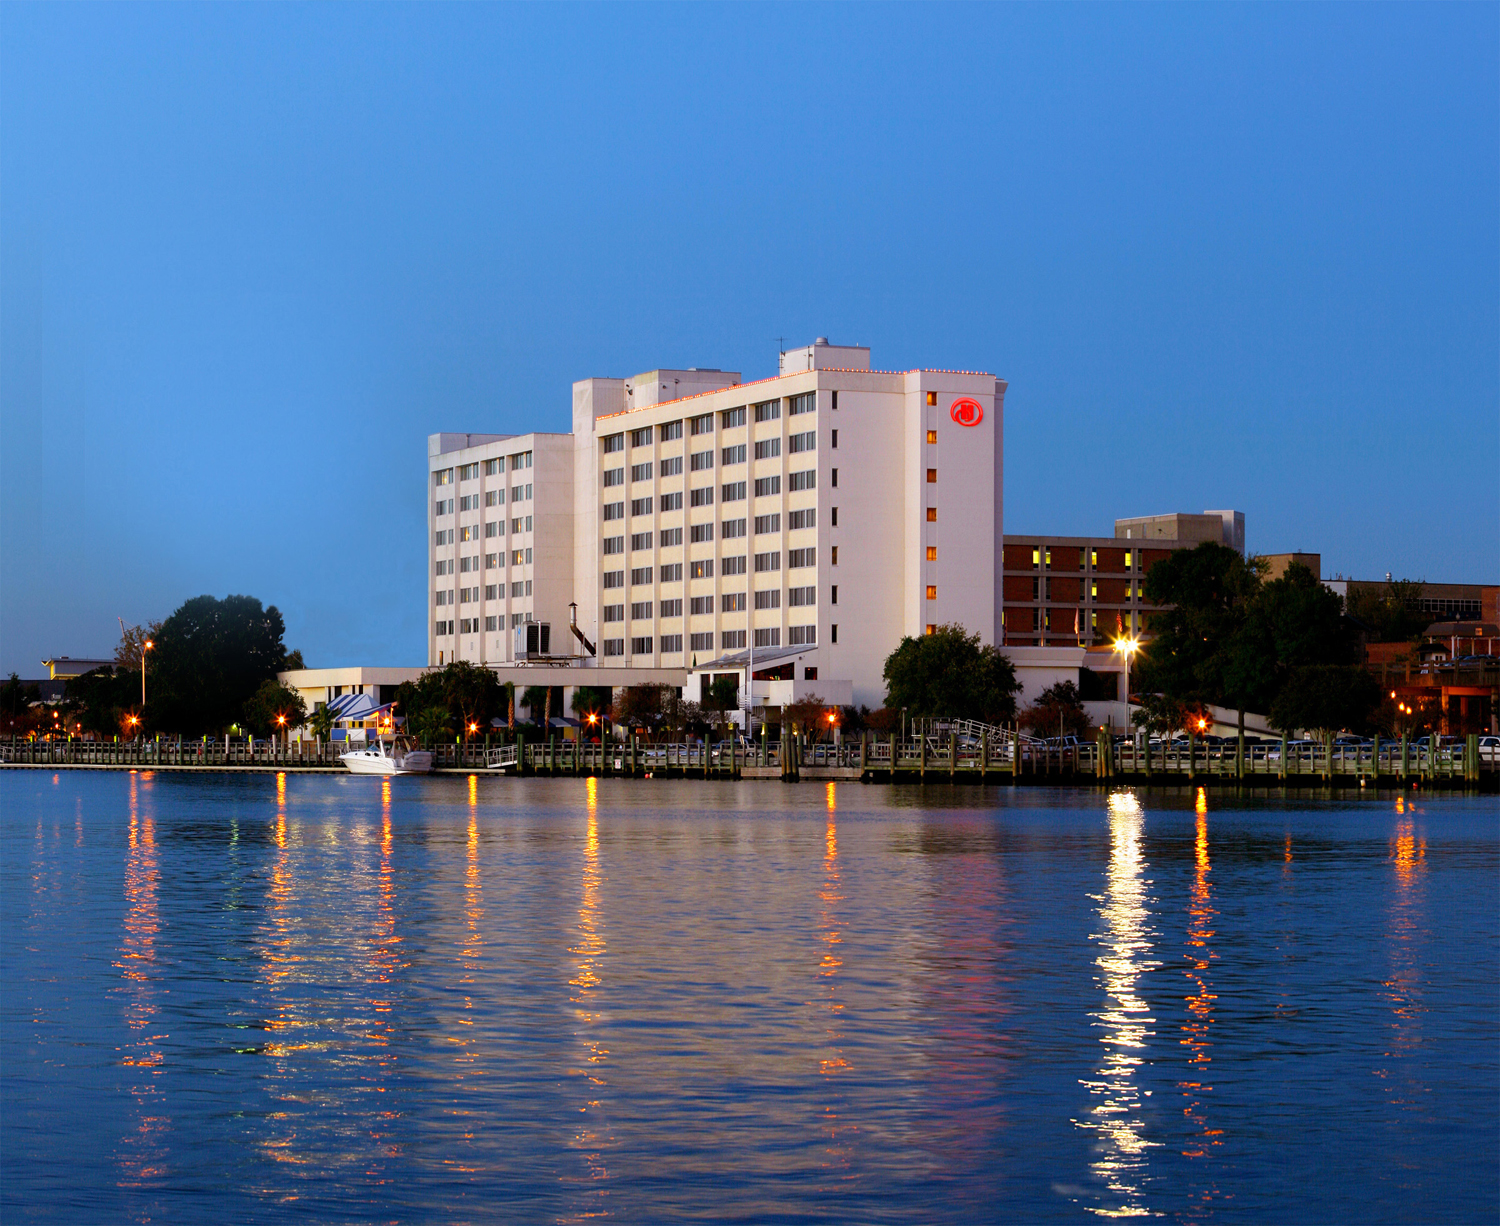 Hilton on the river1.jpg